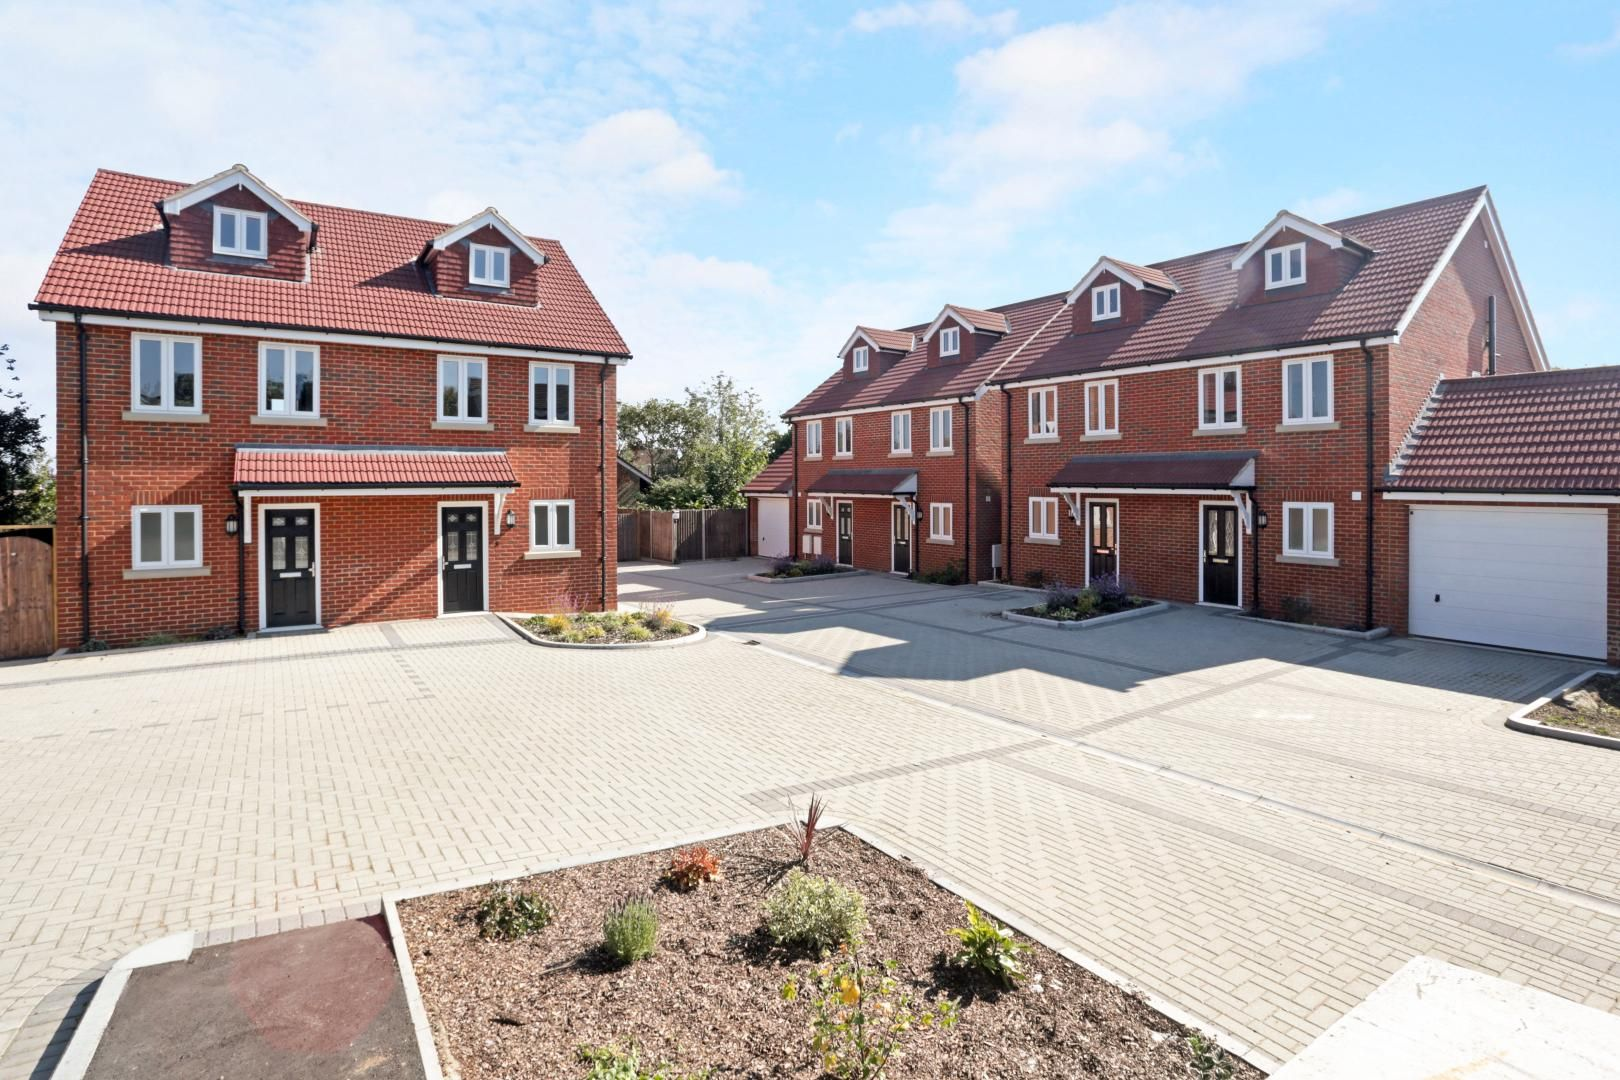 3 bed house for sale in Zara Court, ME8